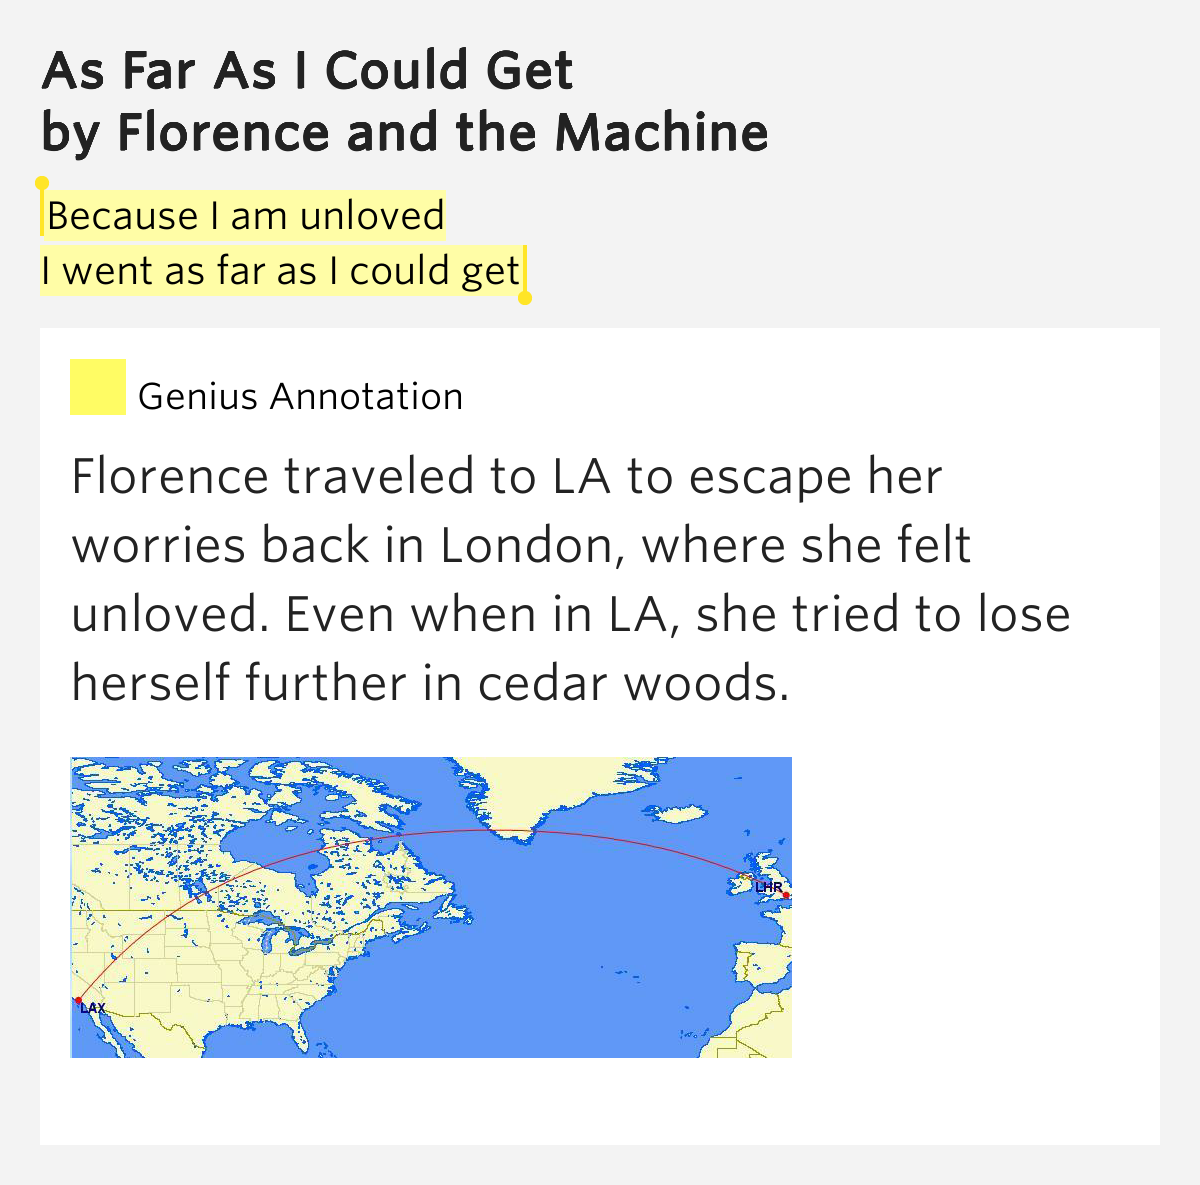 as far as i could get florence and the machine